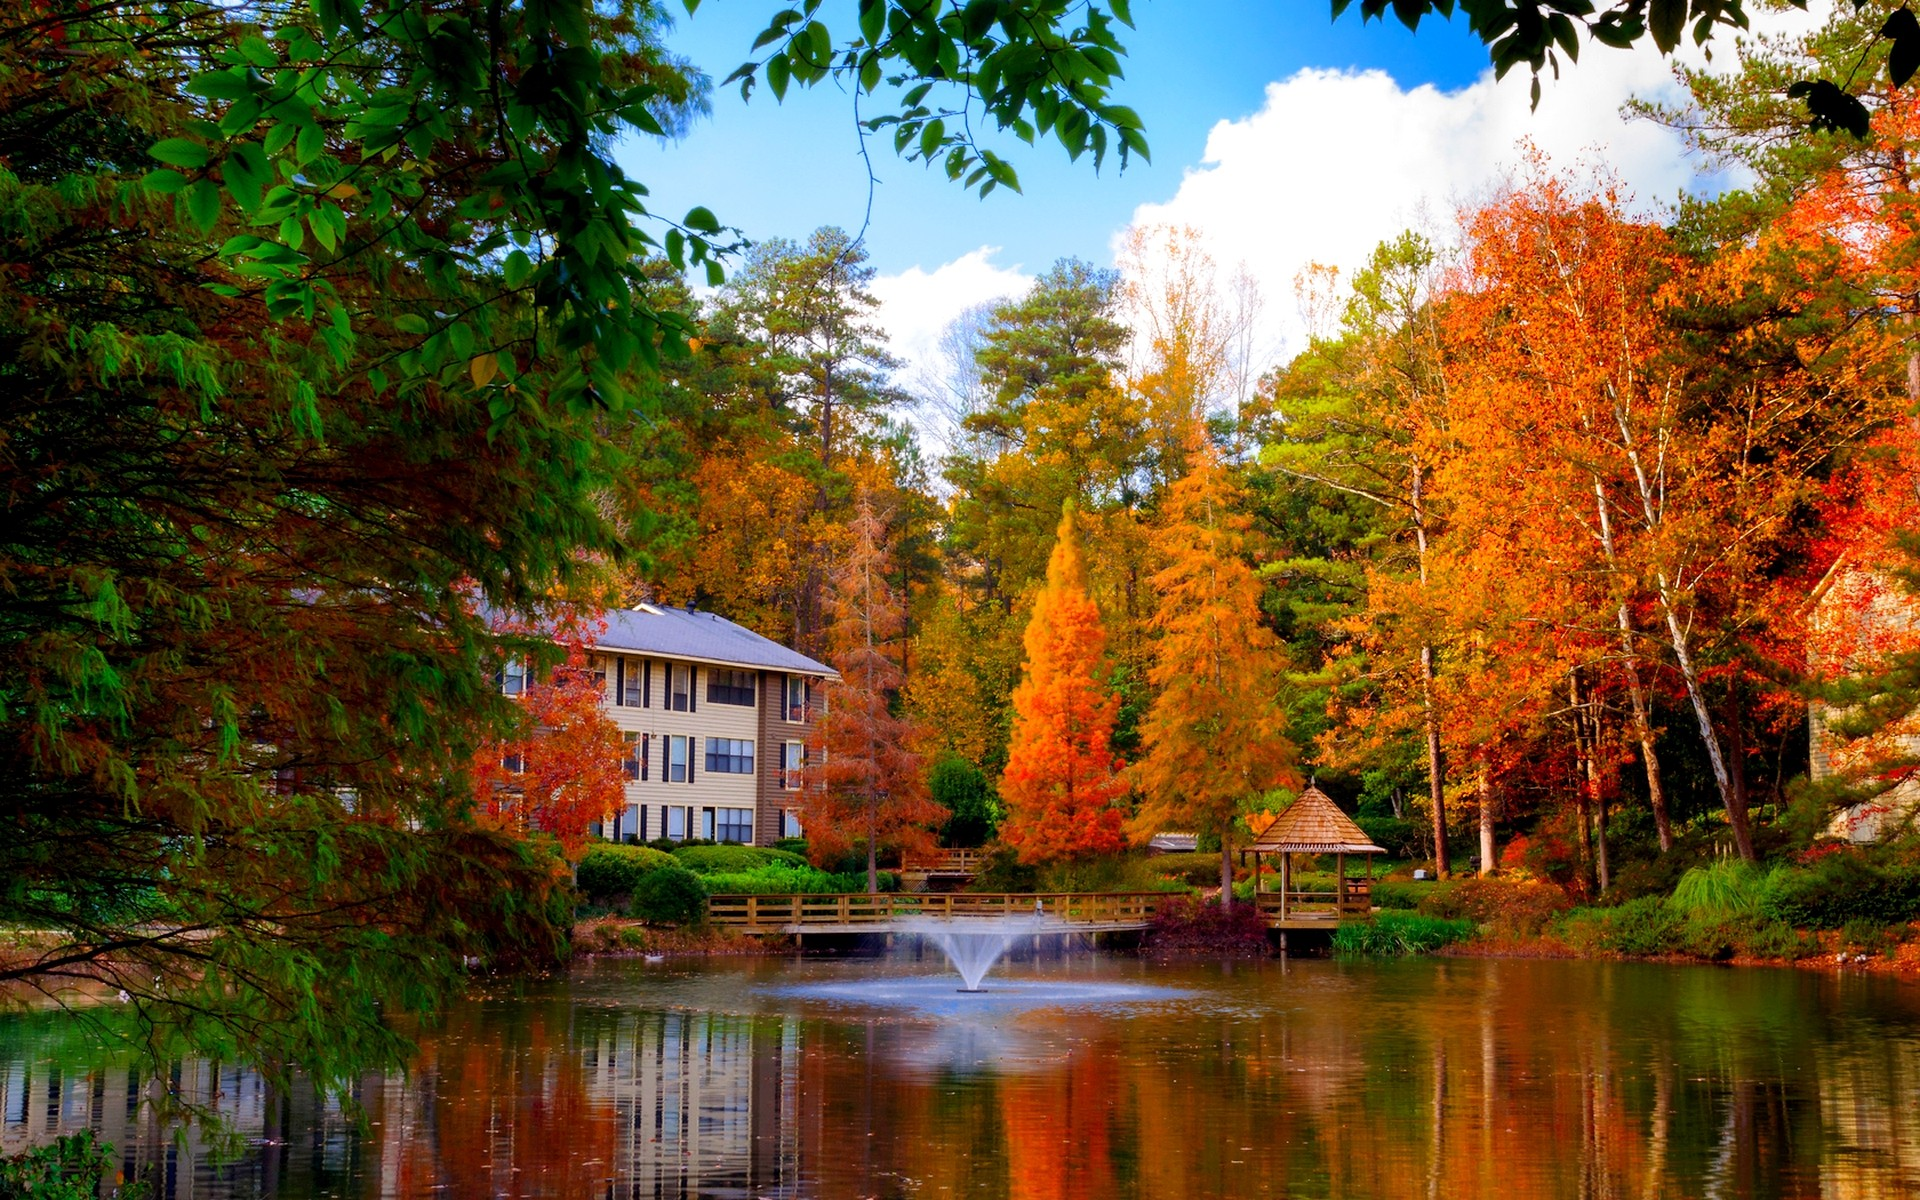 Atlanta Iphone X Wallpaper House On The Lake In Autumn Full Hd Wallpaper And